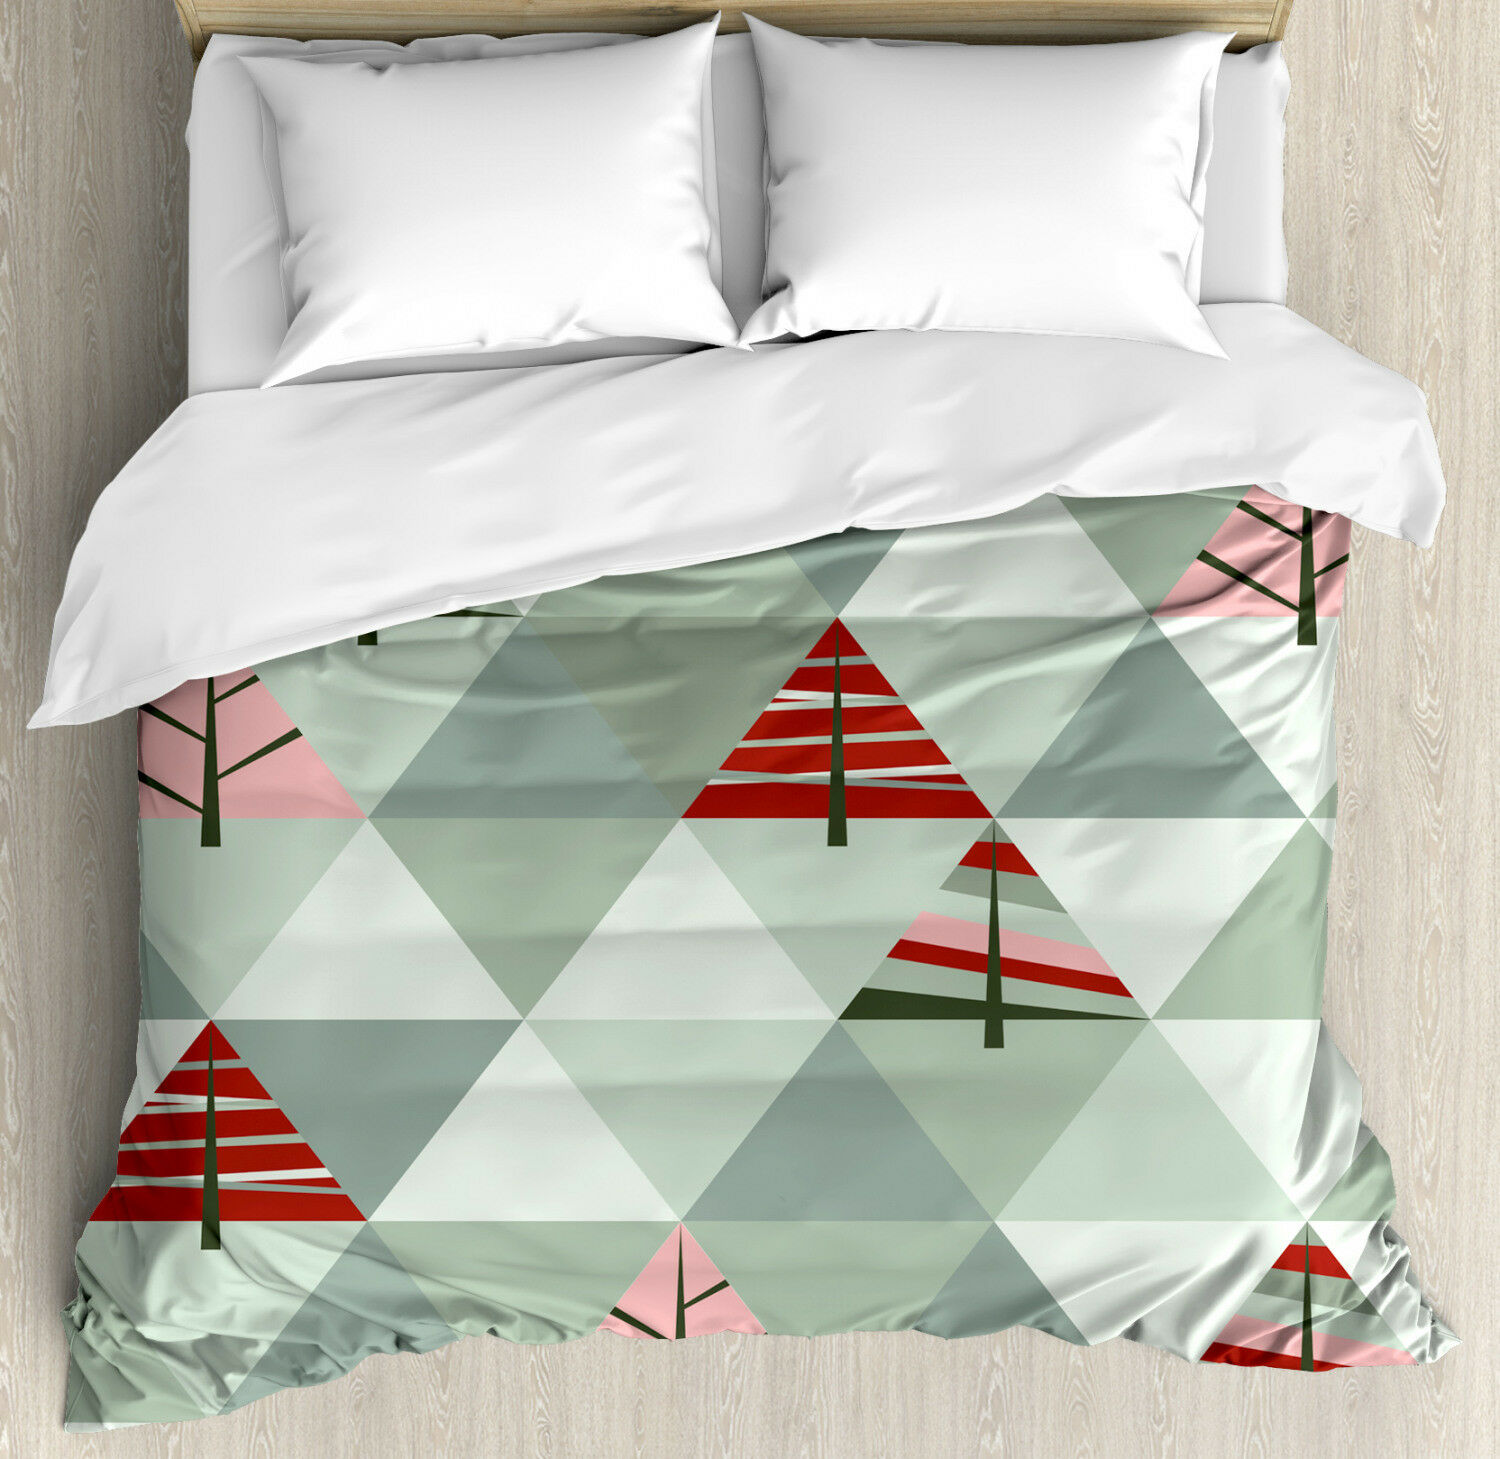 Tree Duvet Cover Set with Pillow Shams Illustration of Triangles Print